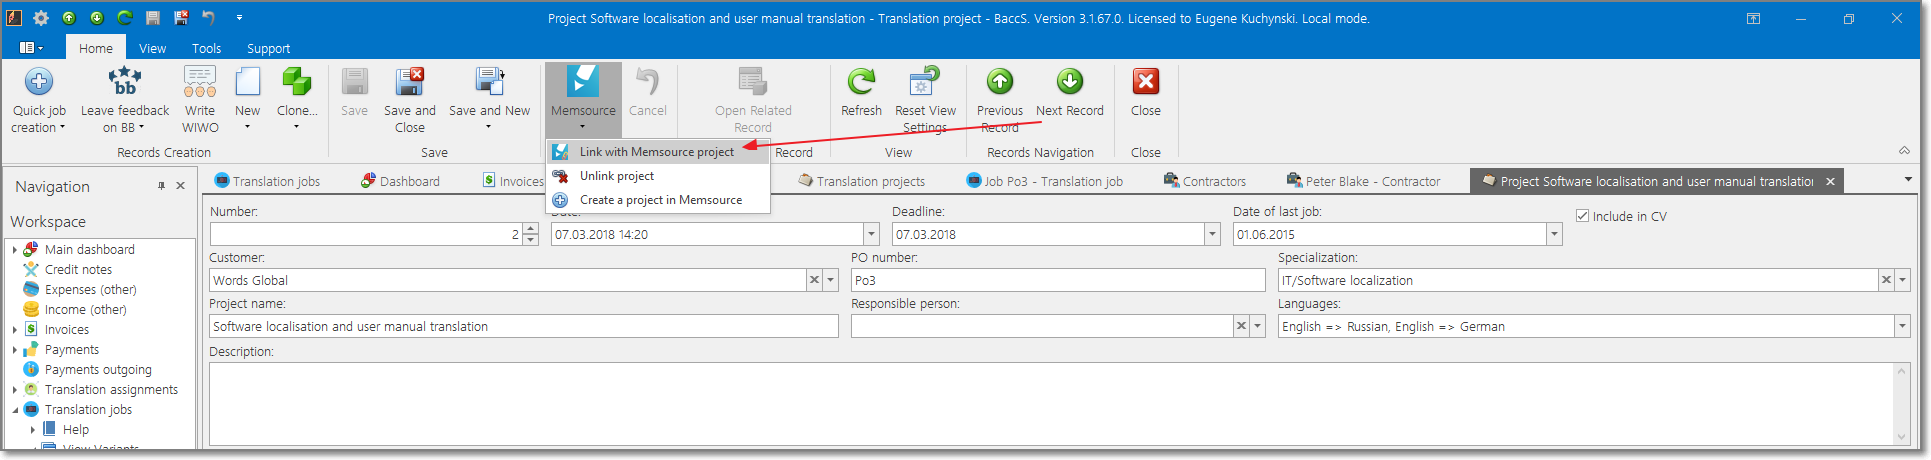 Integration with Memsource translation management software